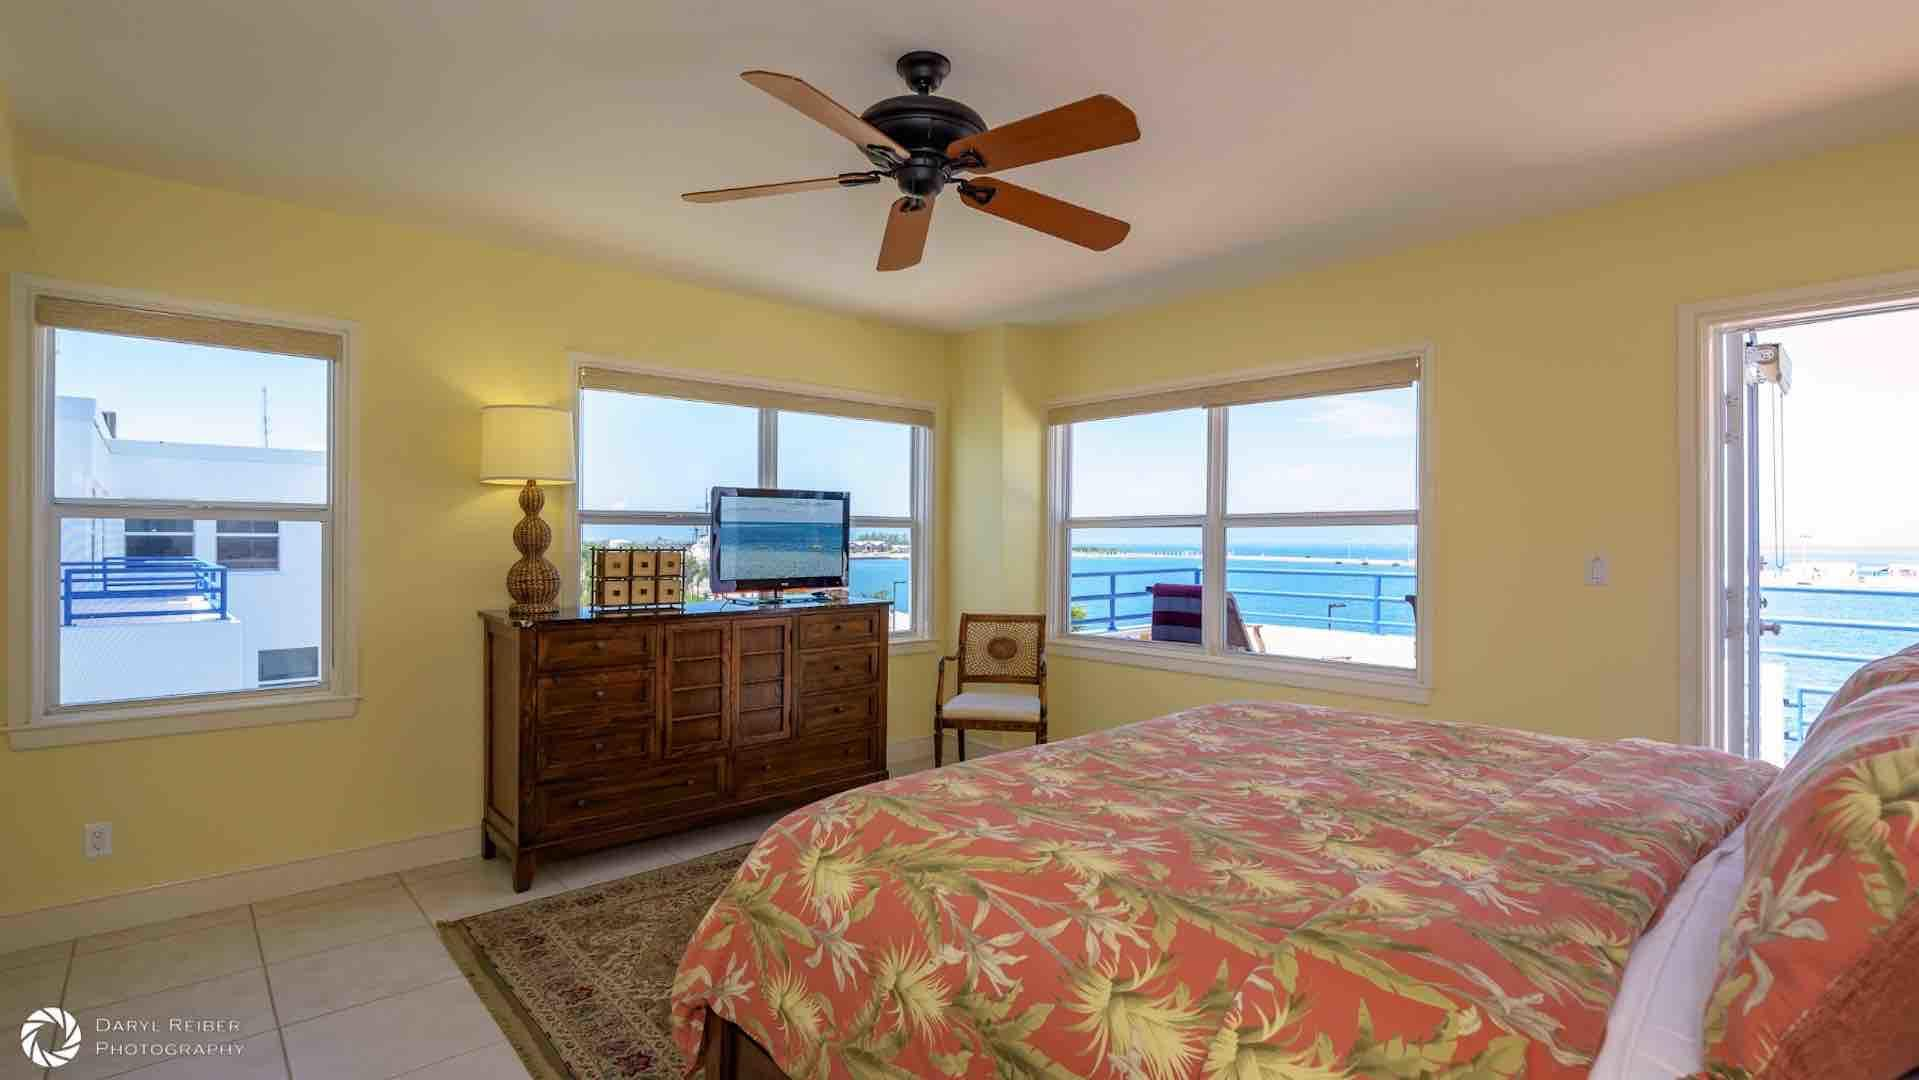 The master bedroom has a flat screen TV and gorgeous views of the Gulf...